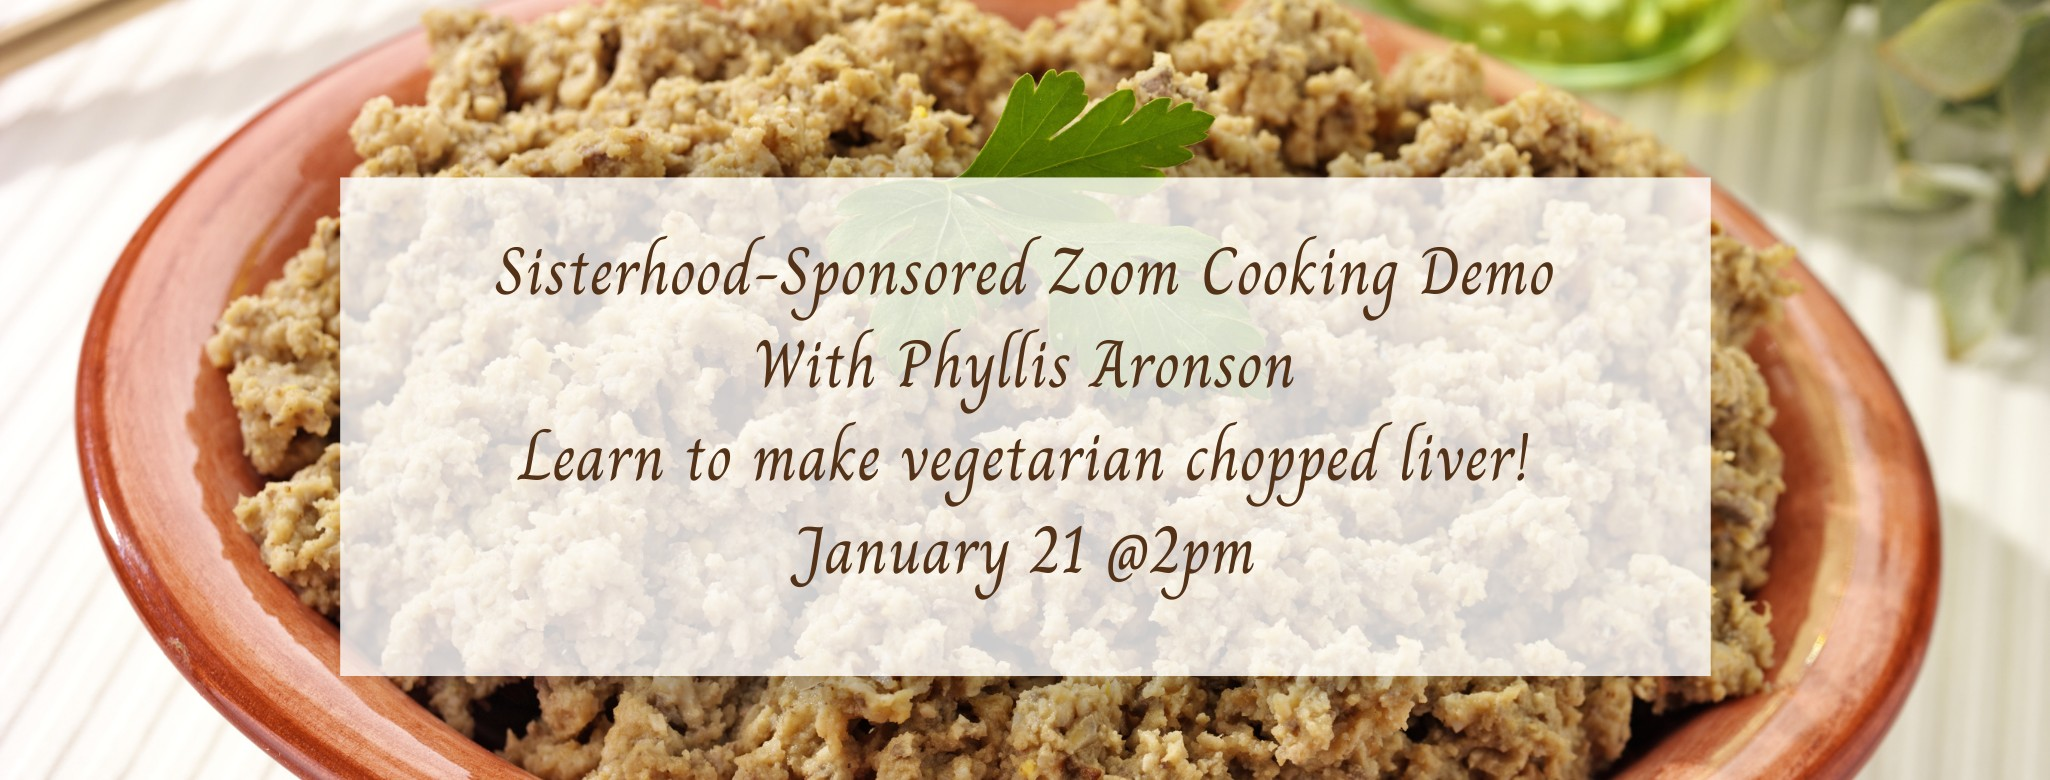 """<a href=""""https://www.templebethel.com/event/cooking-demo-meatless-chopped-liver.html""""                                     target=""""_blank"""">                                                                 <span class=""""slider_title"""">                                     Special Event                                </span>                                                                 </a>                                                                                                                                                                                      <a href=""""https://www.templebethel.com/event/cooking-demo-meatless-chopped-liver.html"""" class=""""slider_link""""                             target=""""_blank"""">                             More Information                            </a>"""